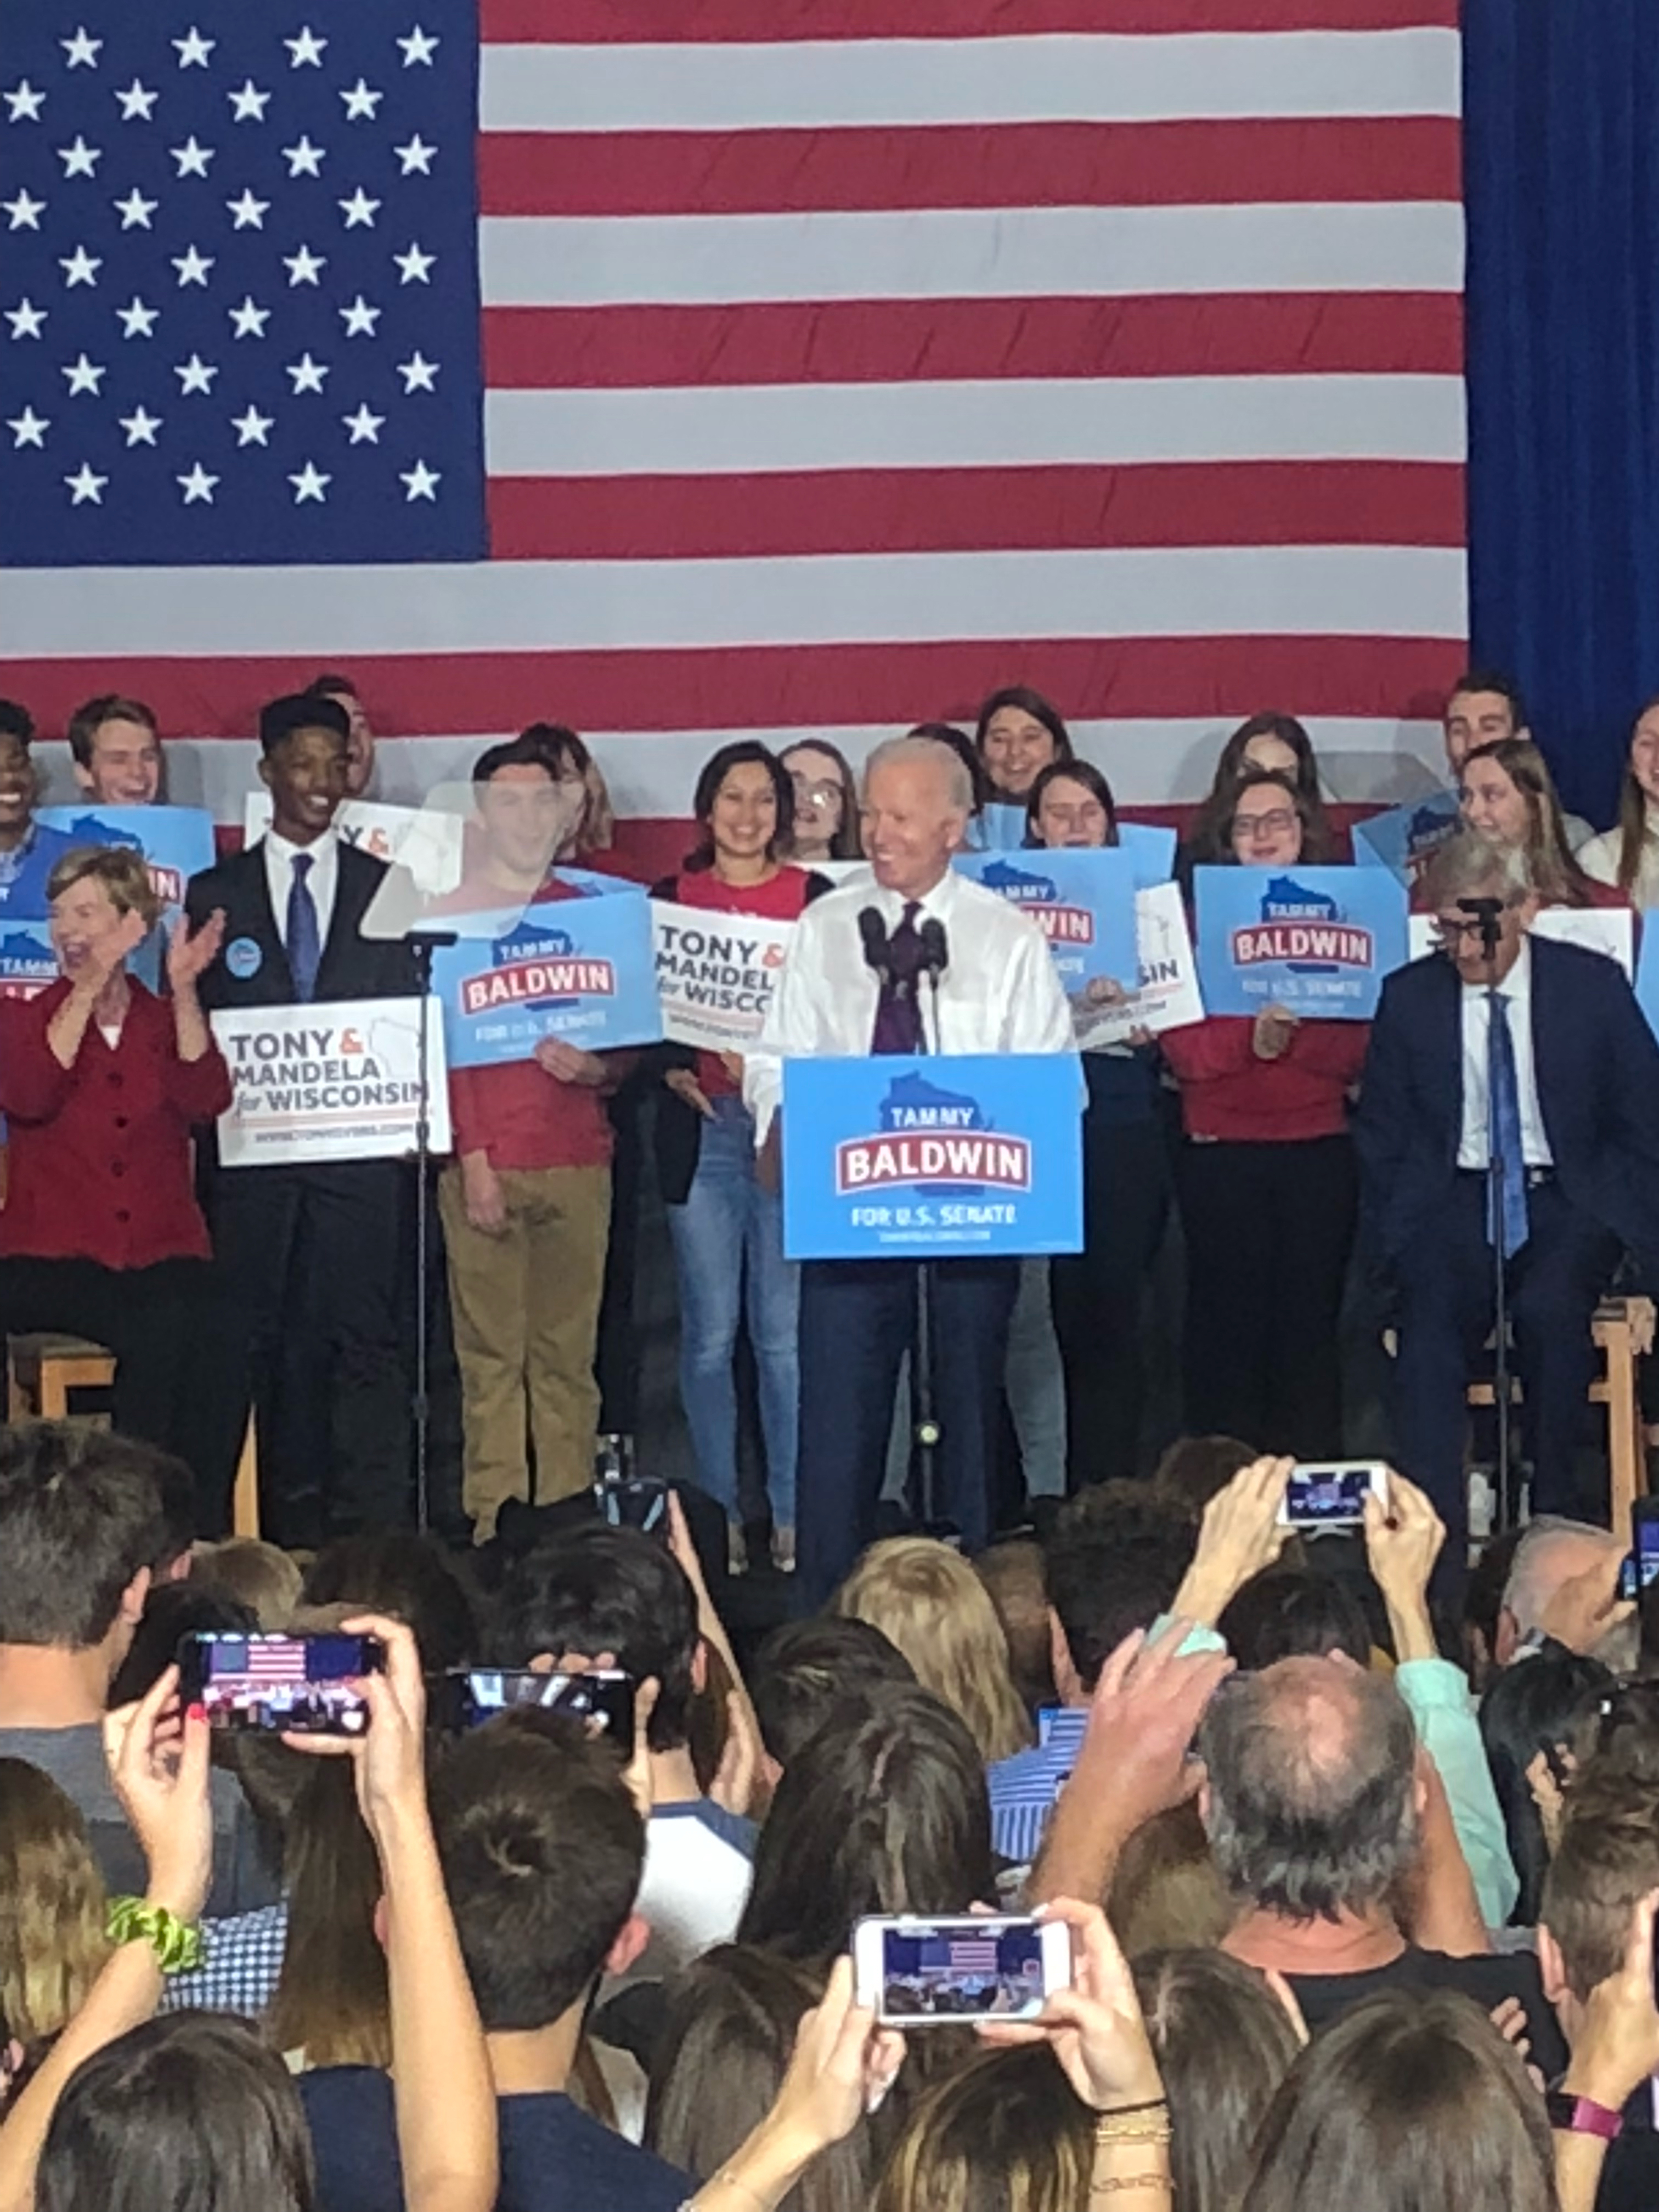 Joe Biden visits UW-Madison campus to campaign for Baldwin, Evers